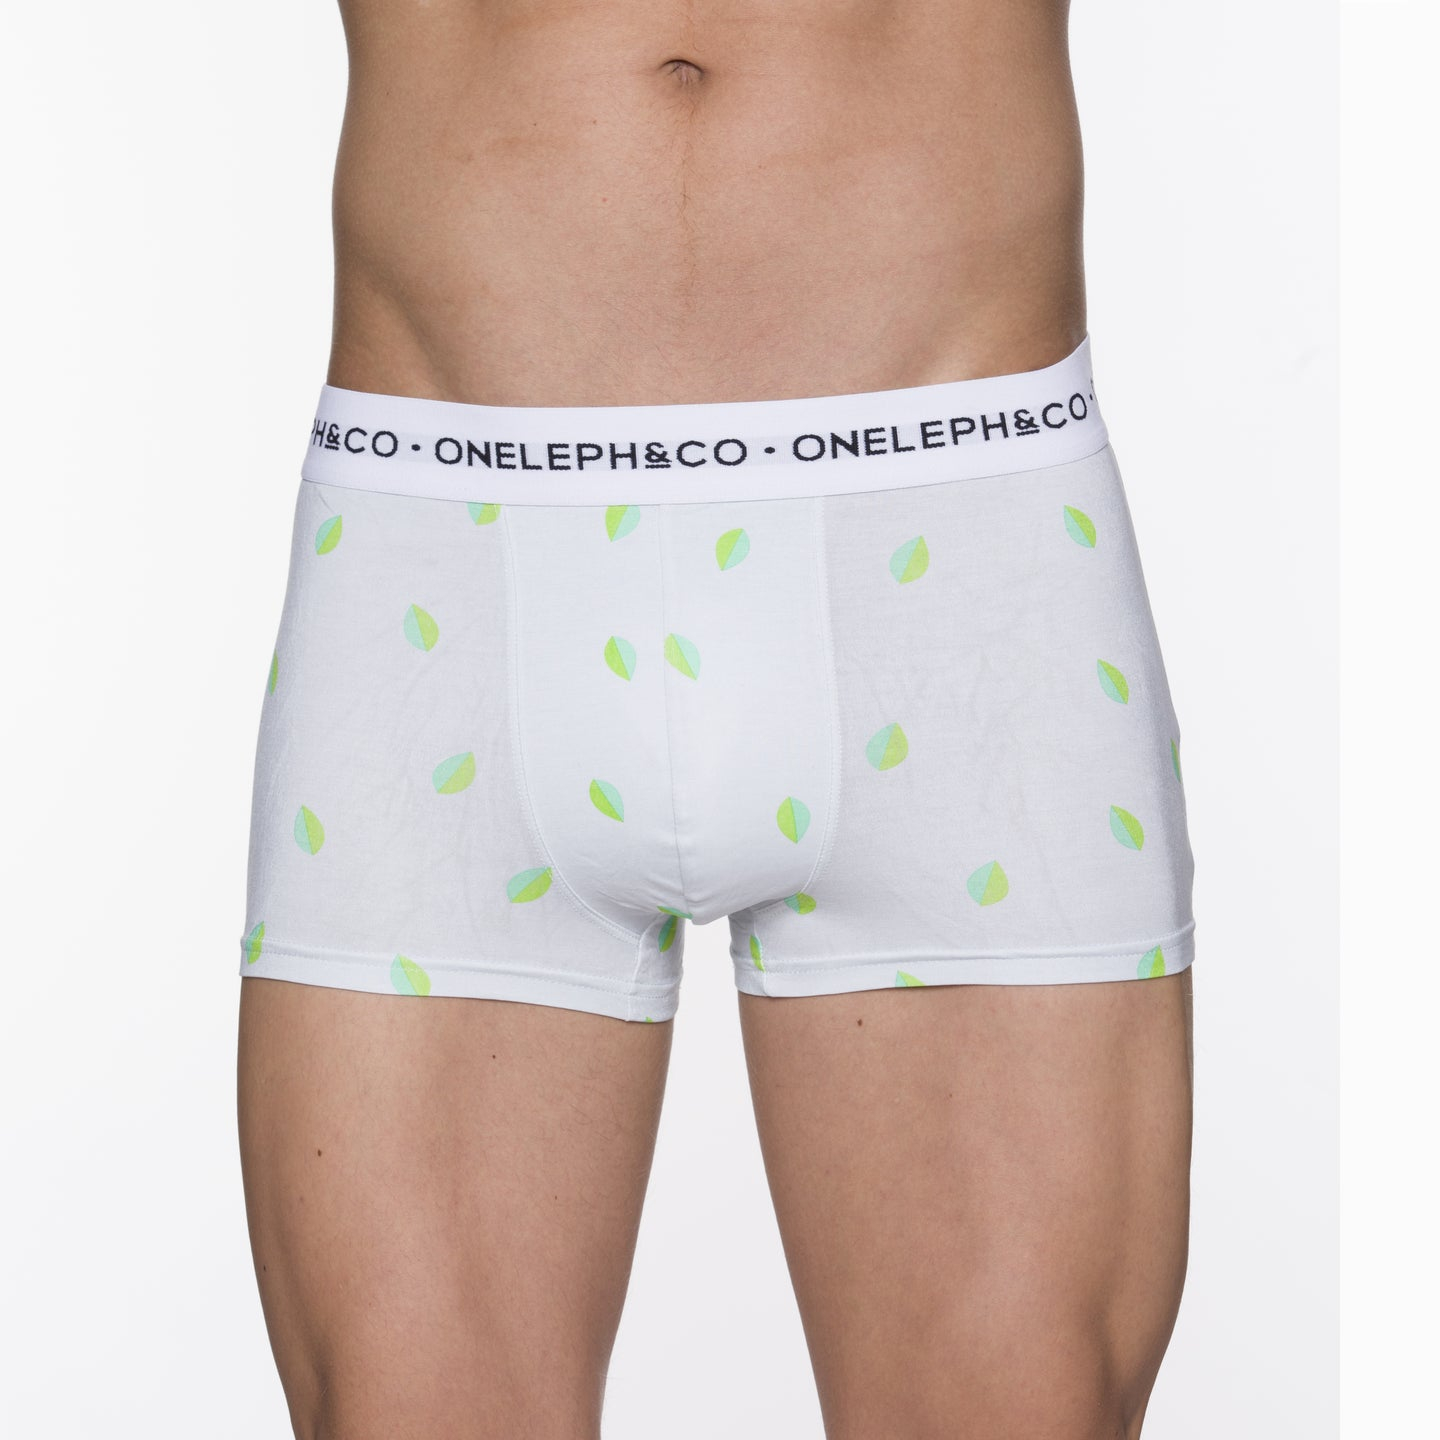 Emoji shorts Men's Underwear